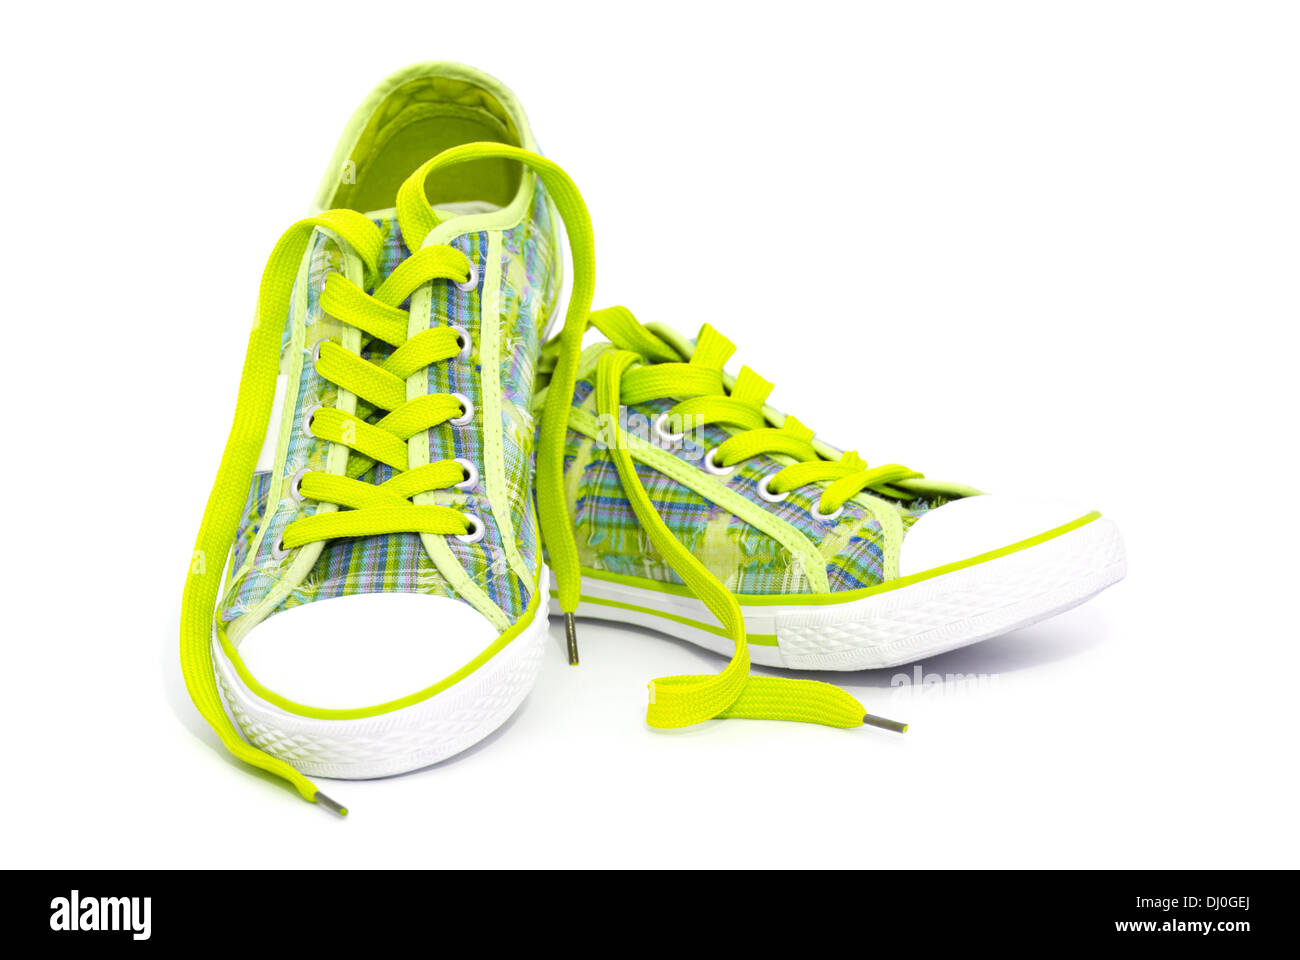 bdd91980492118 Closeup of yellow sneakers with shoelaces isolated on white background